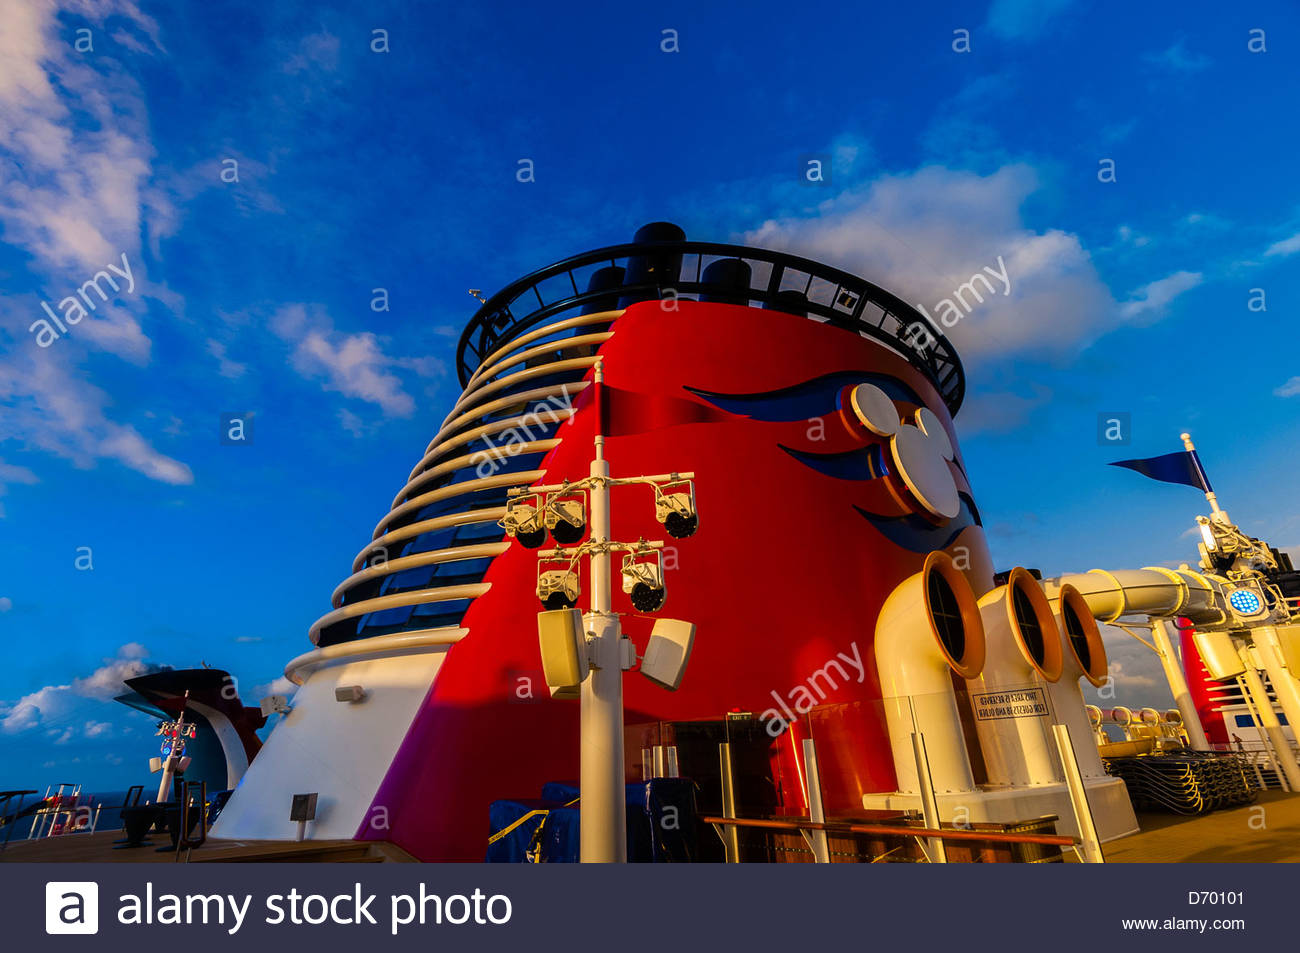 Art Deco Smoke Stack Disney Dream Cruise Ship Nassau The - Is there smoking on cruise ships